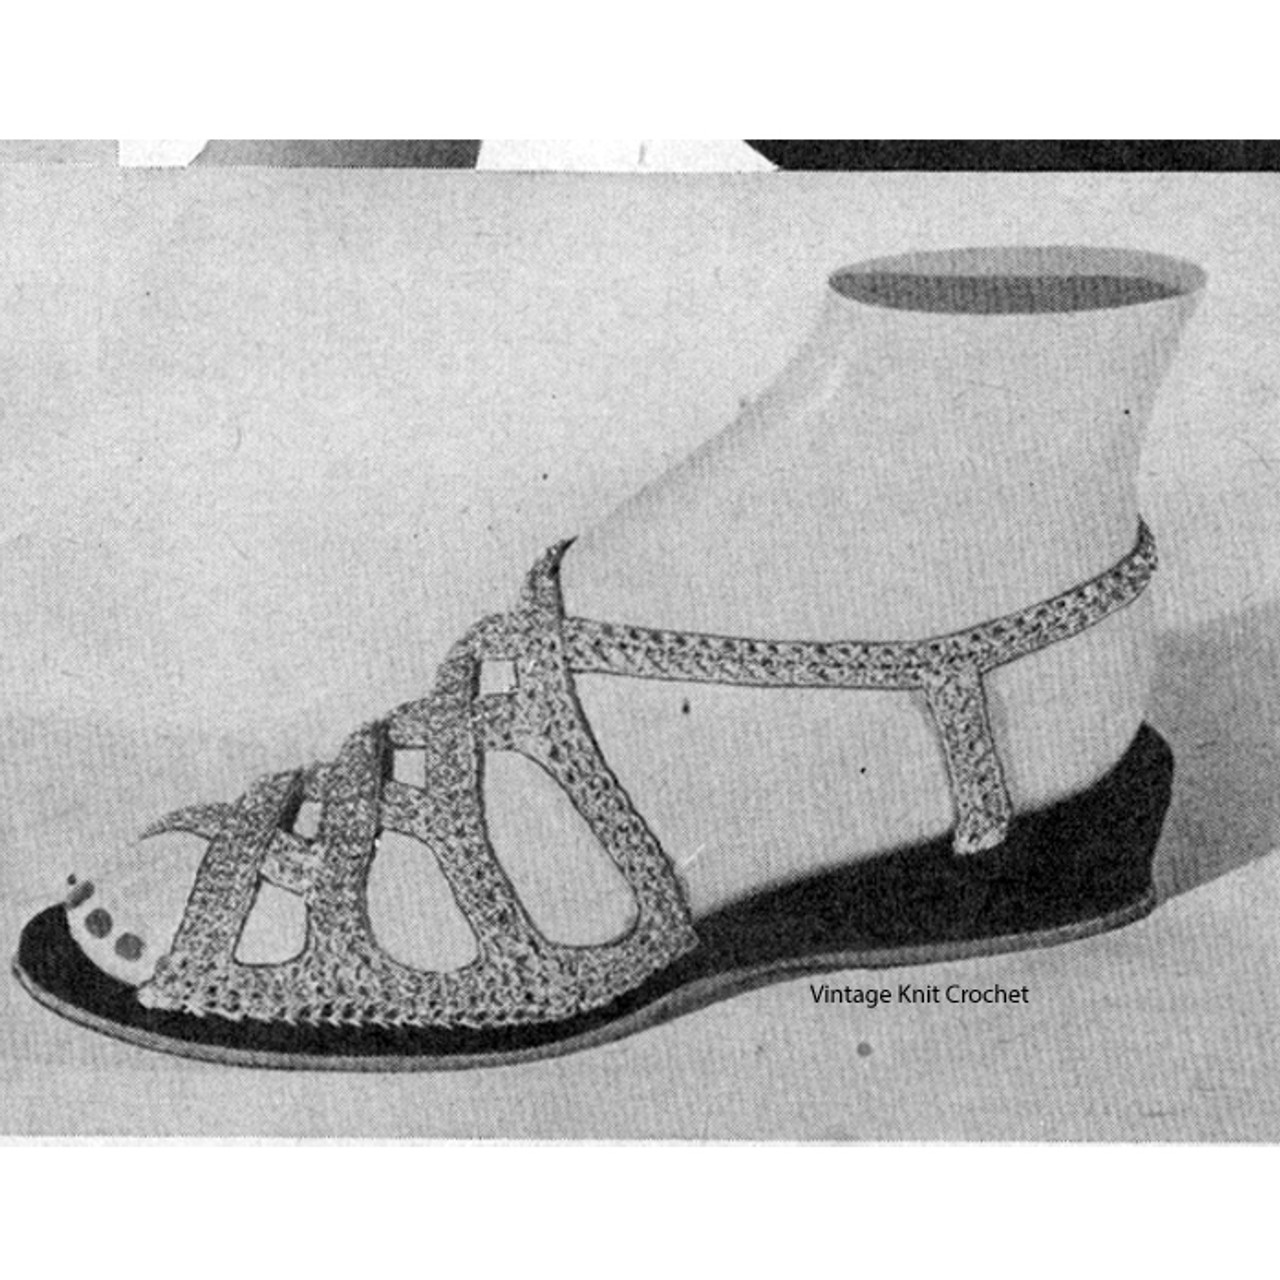 Vintage Crocheted Wedge Sandals Pattern